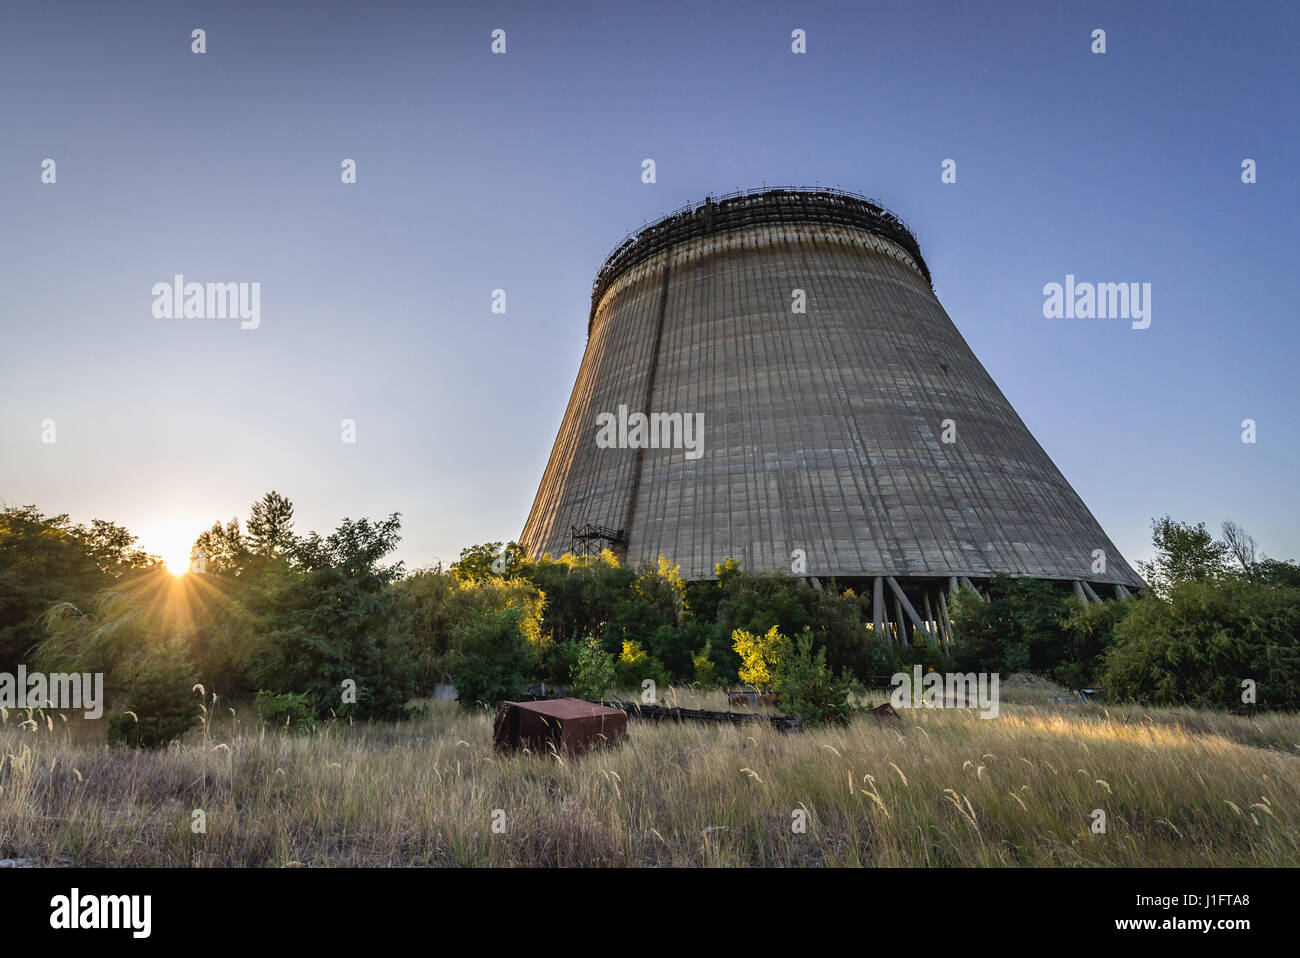 Cooling tower of Chernobyl Nuclear Power Plant in Zone of Alienation around the nuclear reactor disaster in Ukraine - Stock Image